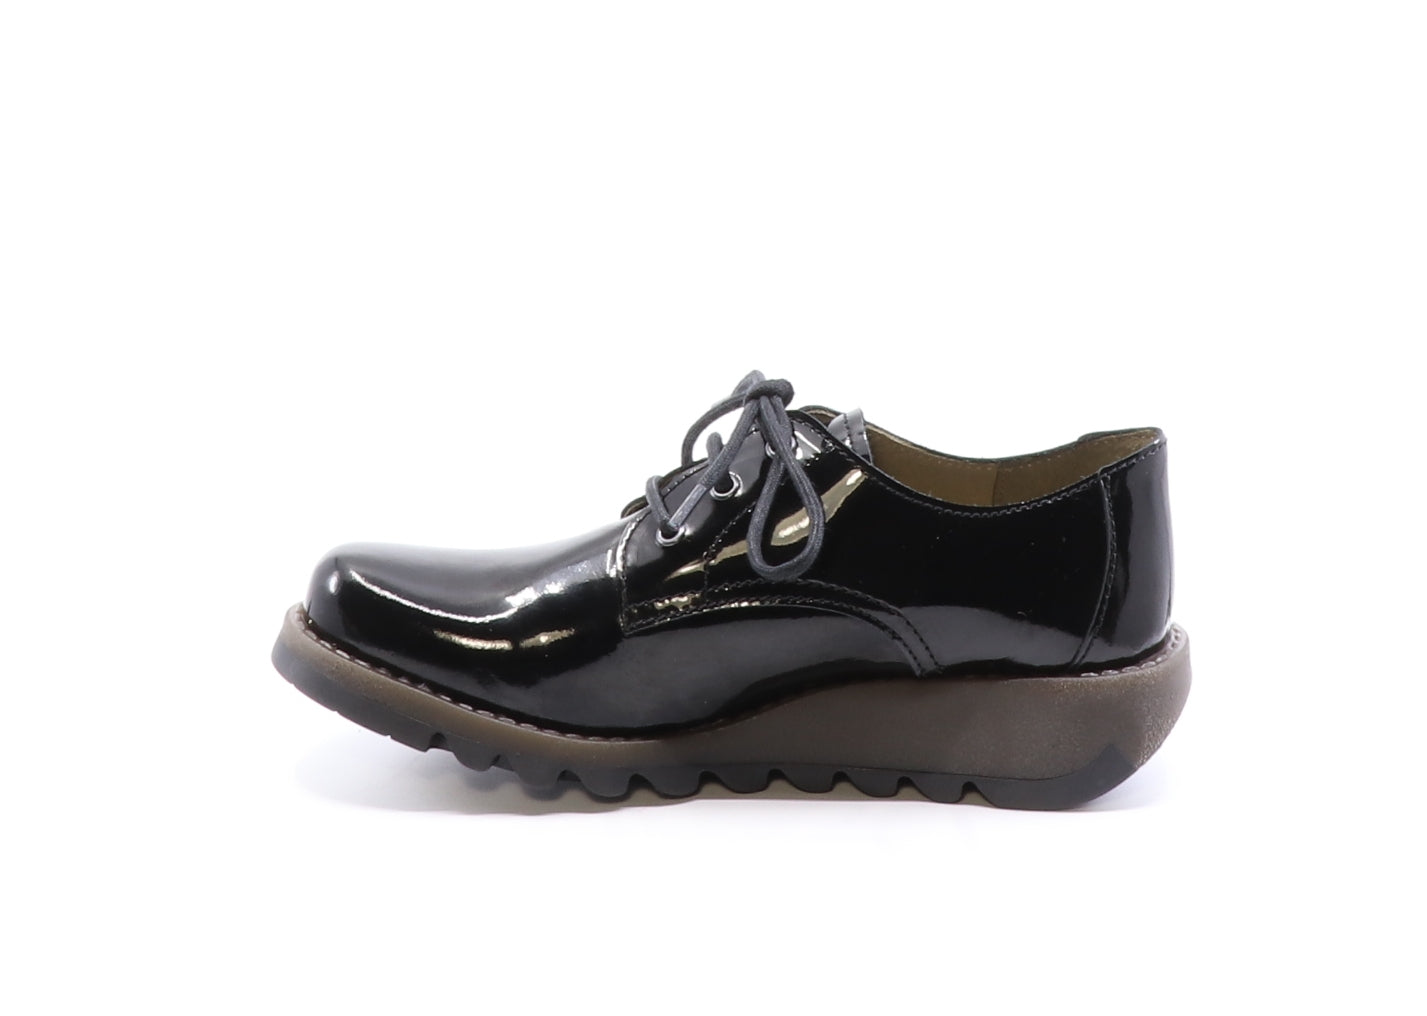 Fly London Simb in black atlantis available at Shoe Muse